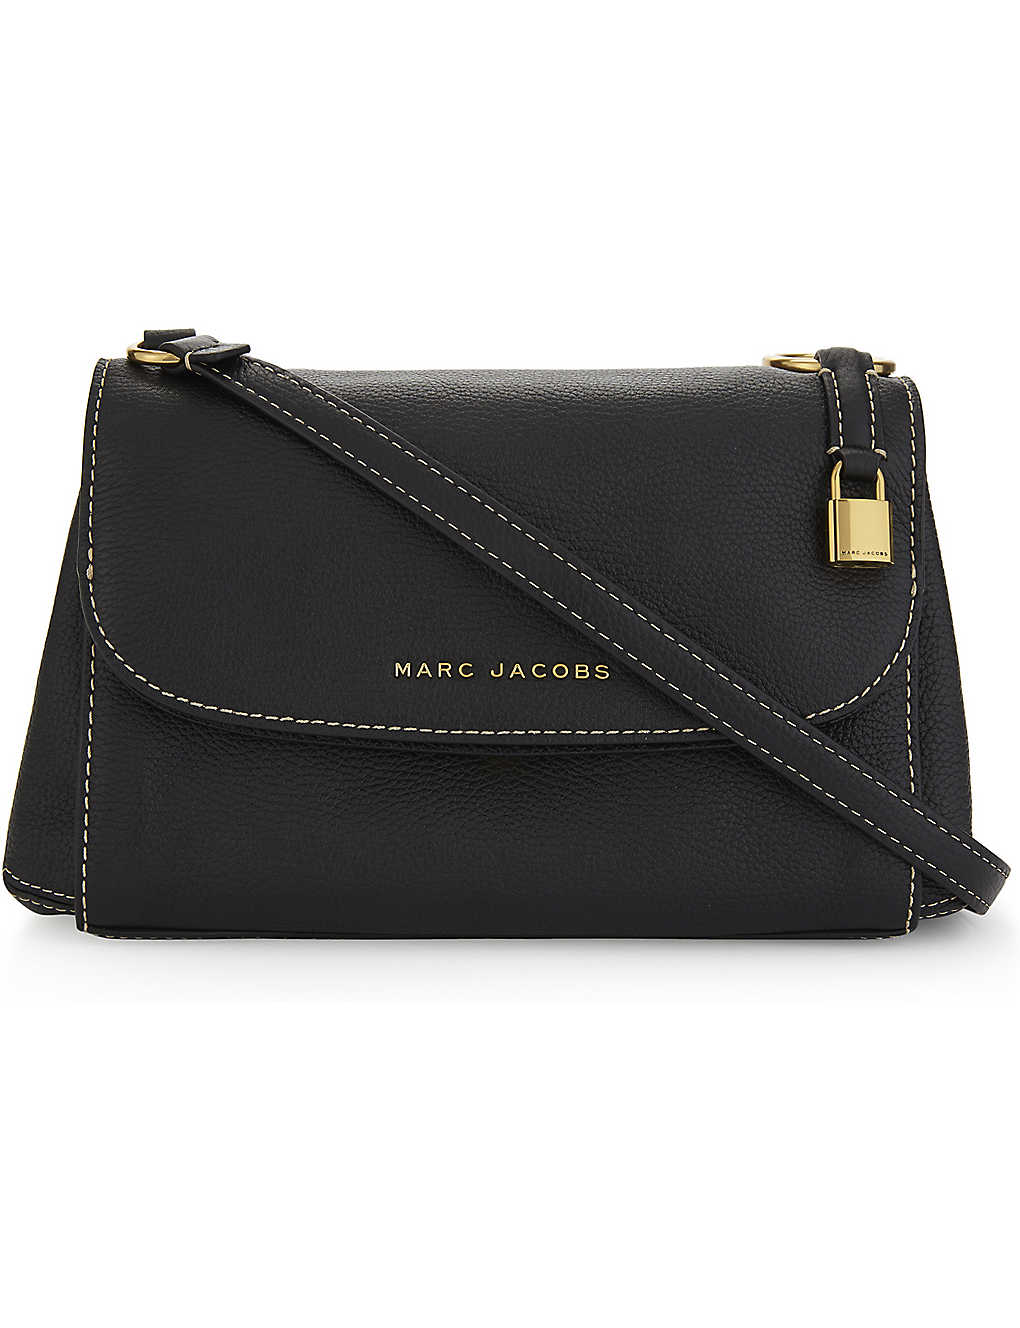 ee9122551c2c MARC JACOBS - Boho Grind leather cross-body bag